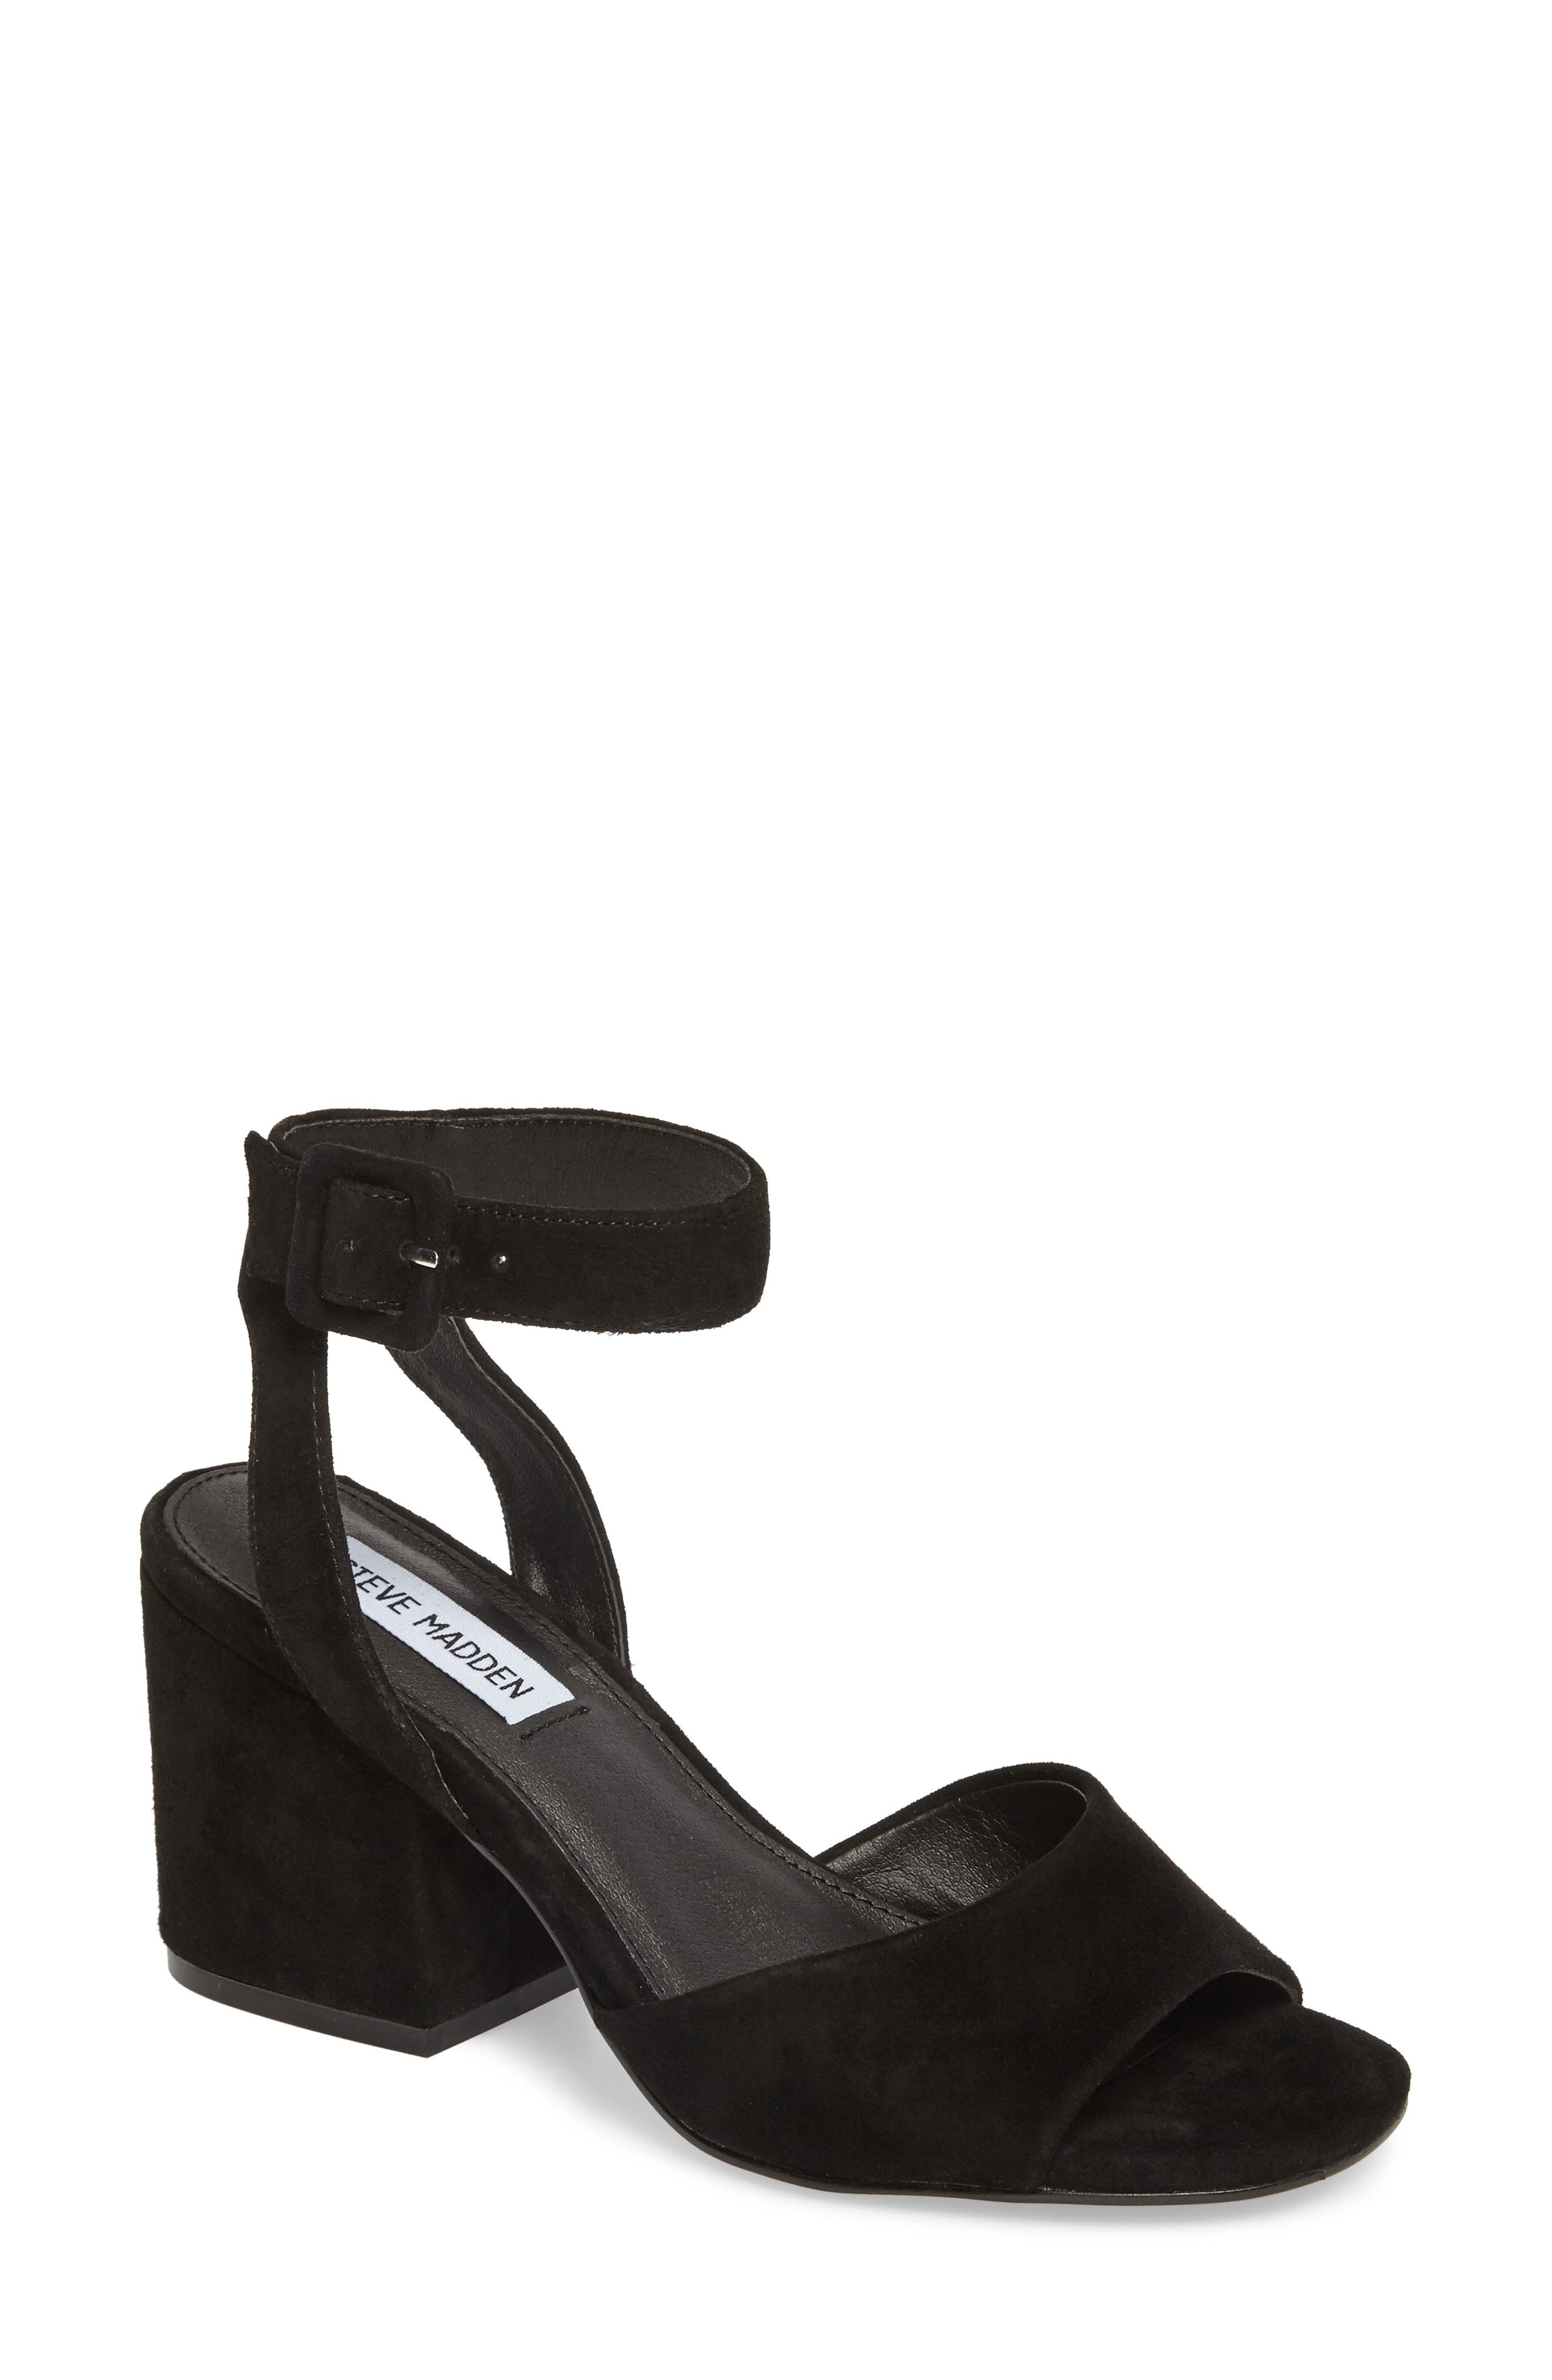 Debbie Sandal,                             Main thumbnail 1, color,                             Black Suede